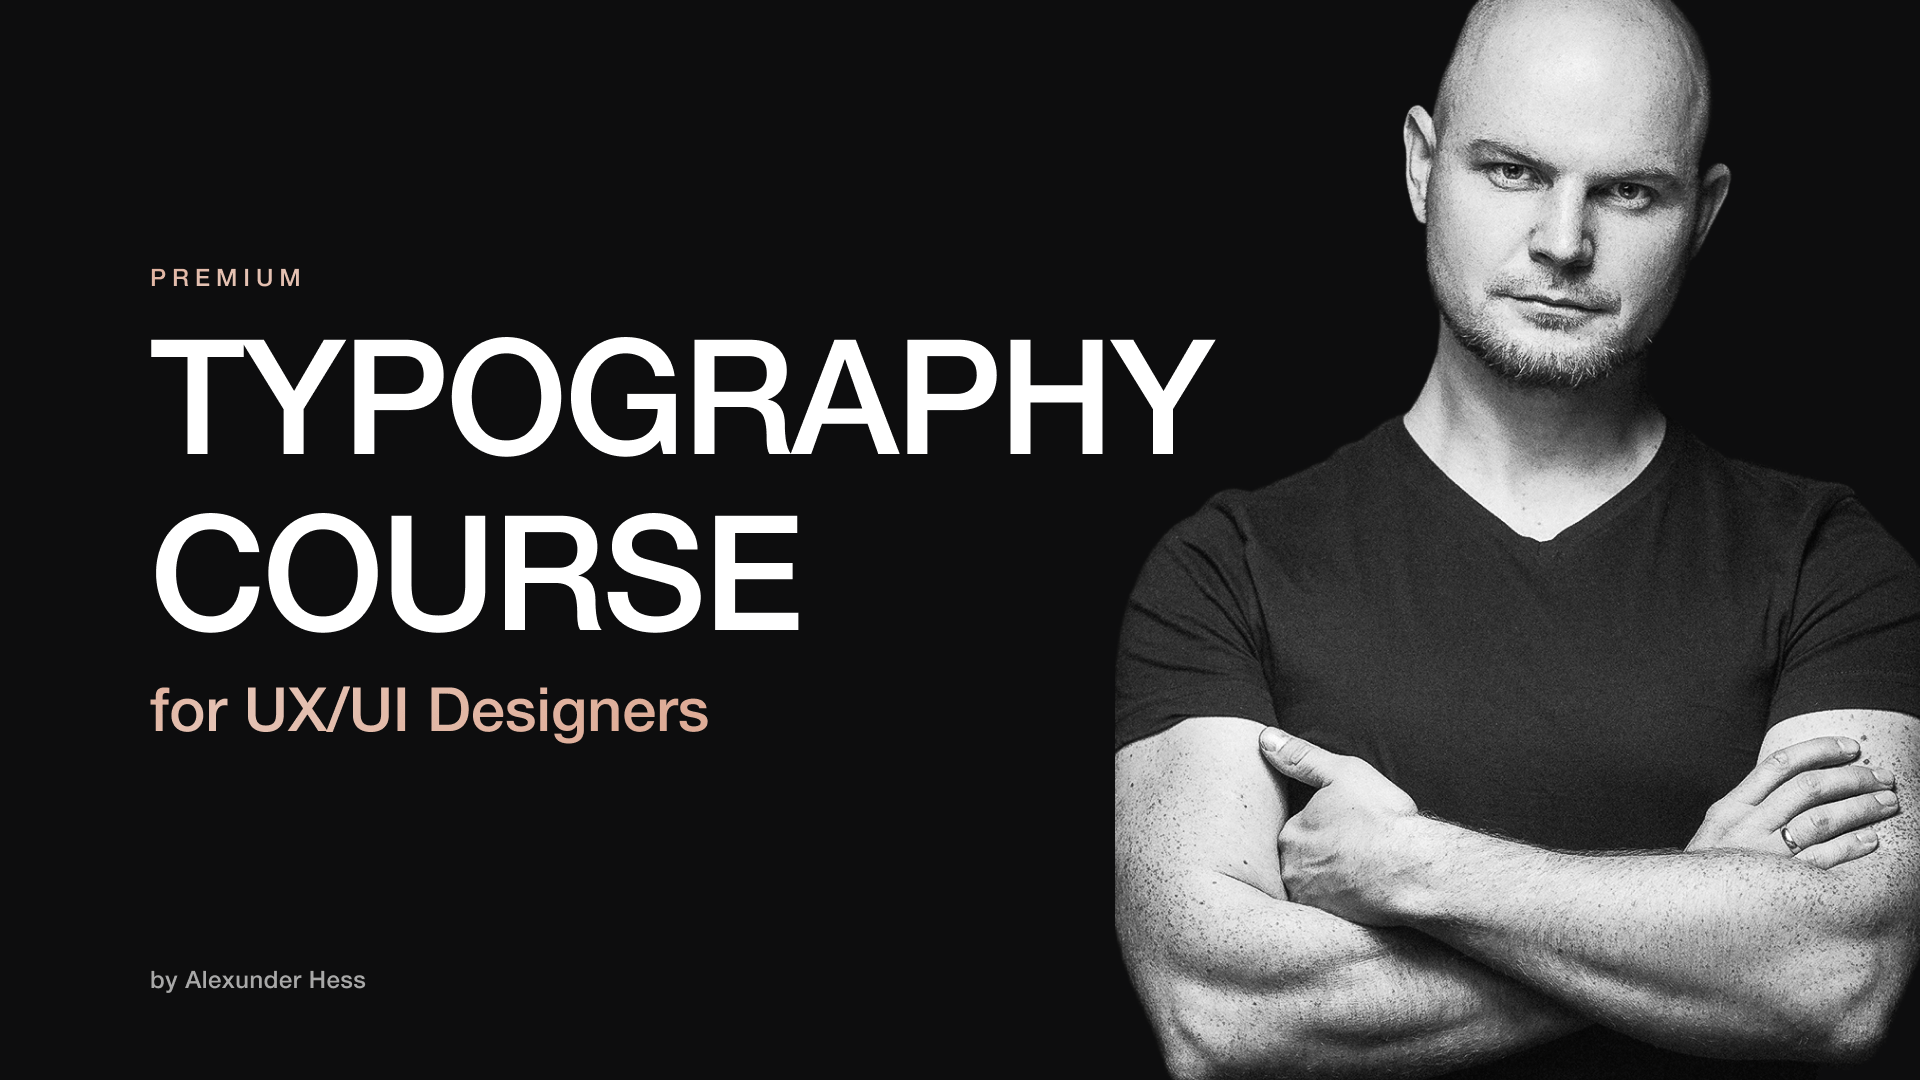 typography-course-for-uxui-designers-by-alexunder-hess-premium